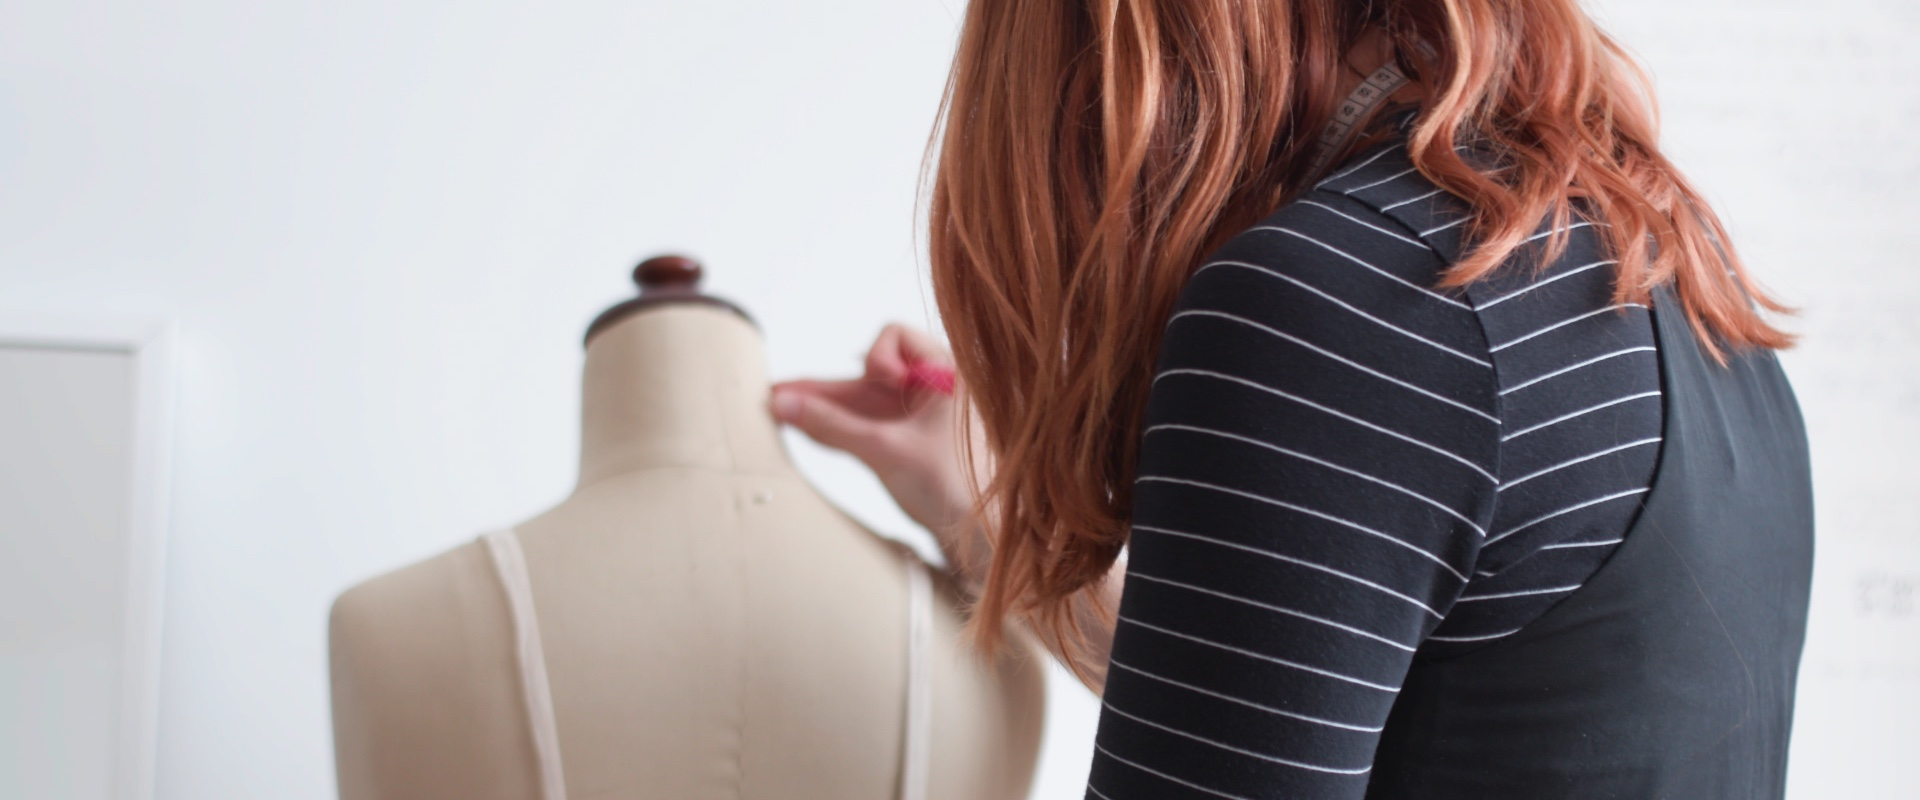 Sharing tips + tricks so you can feel more confident and enjoy the process of making your own clothes   Check Out The Blog